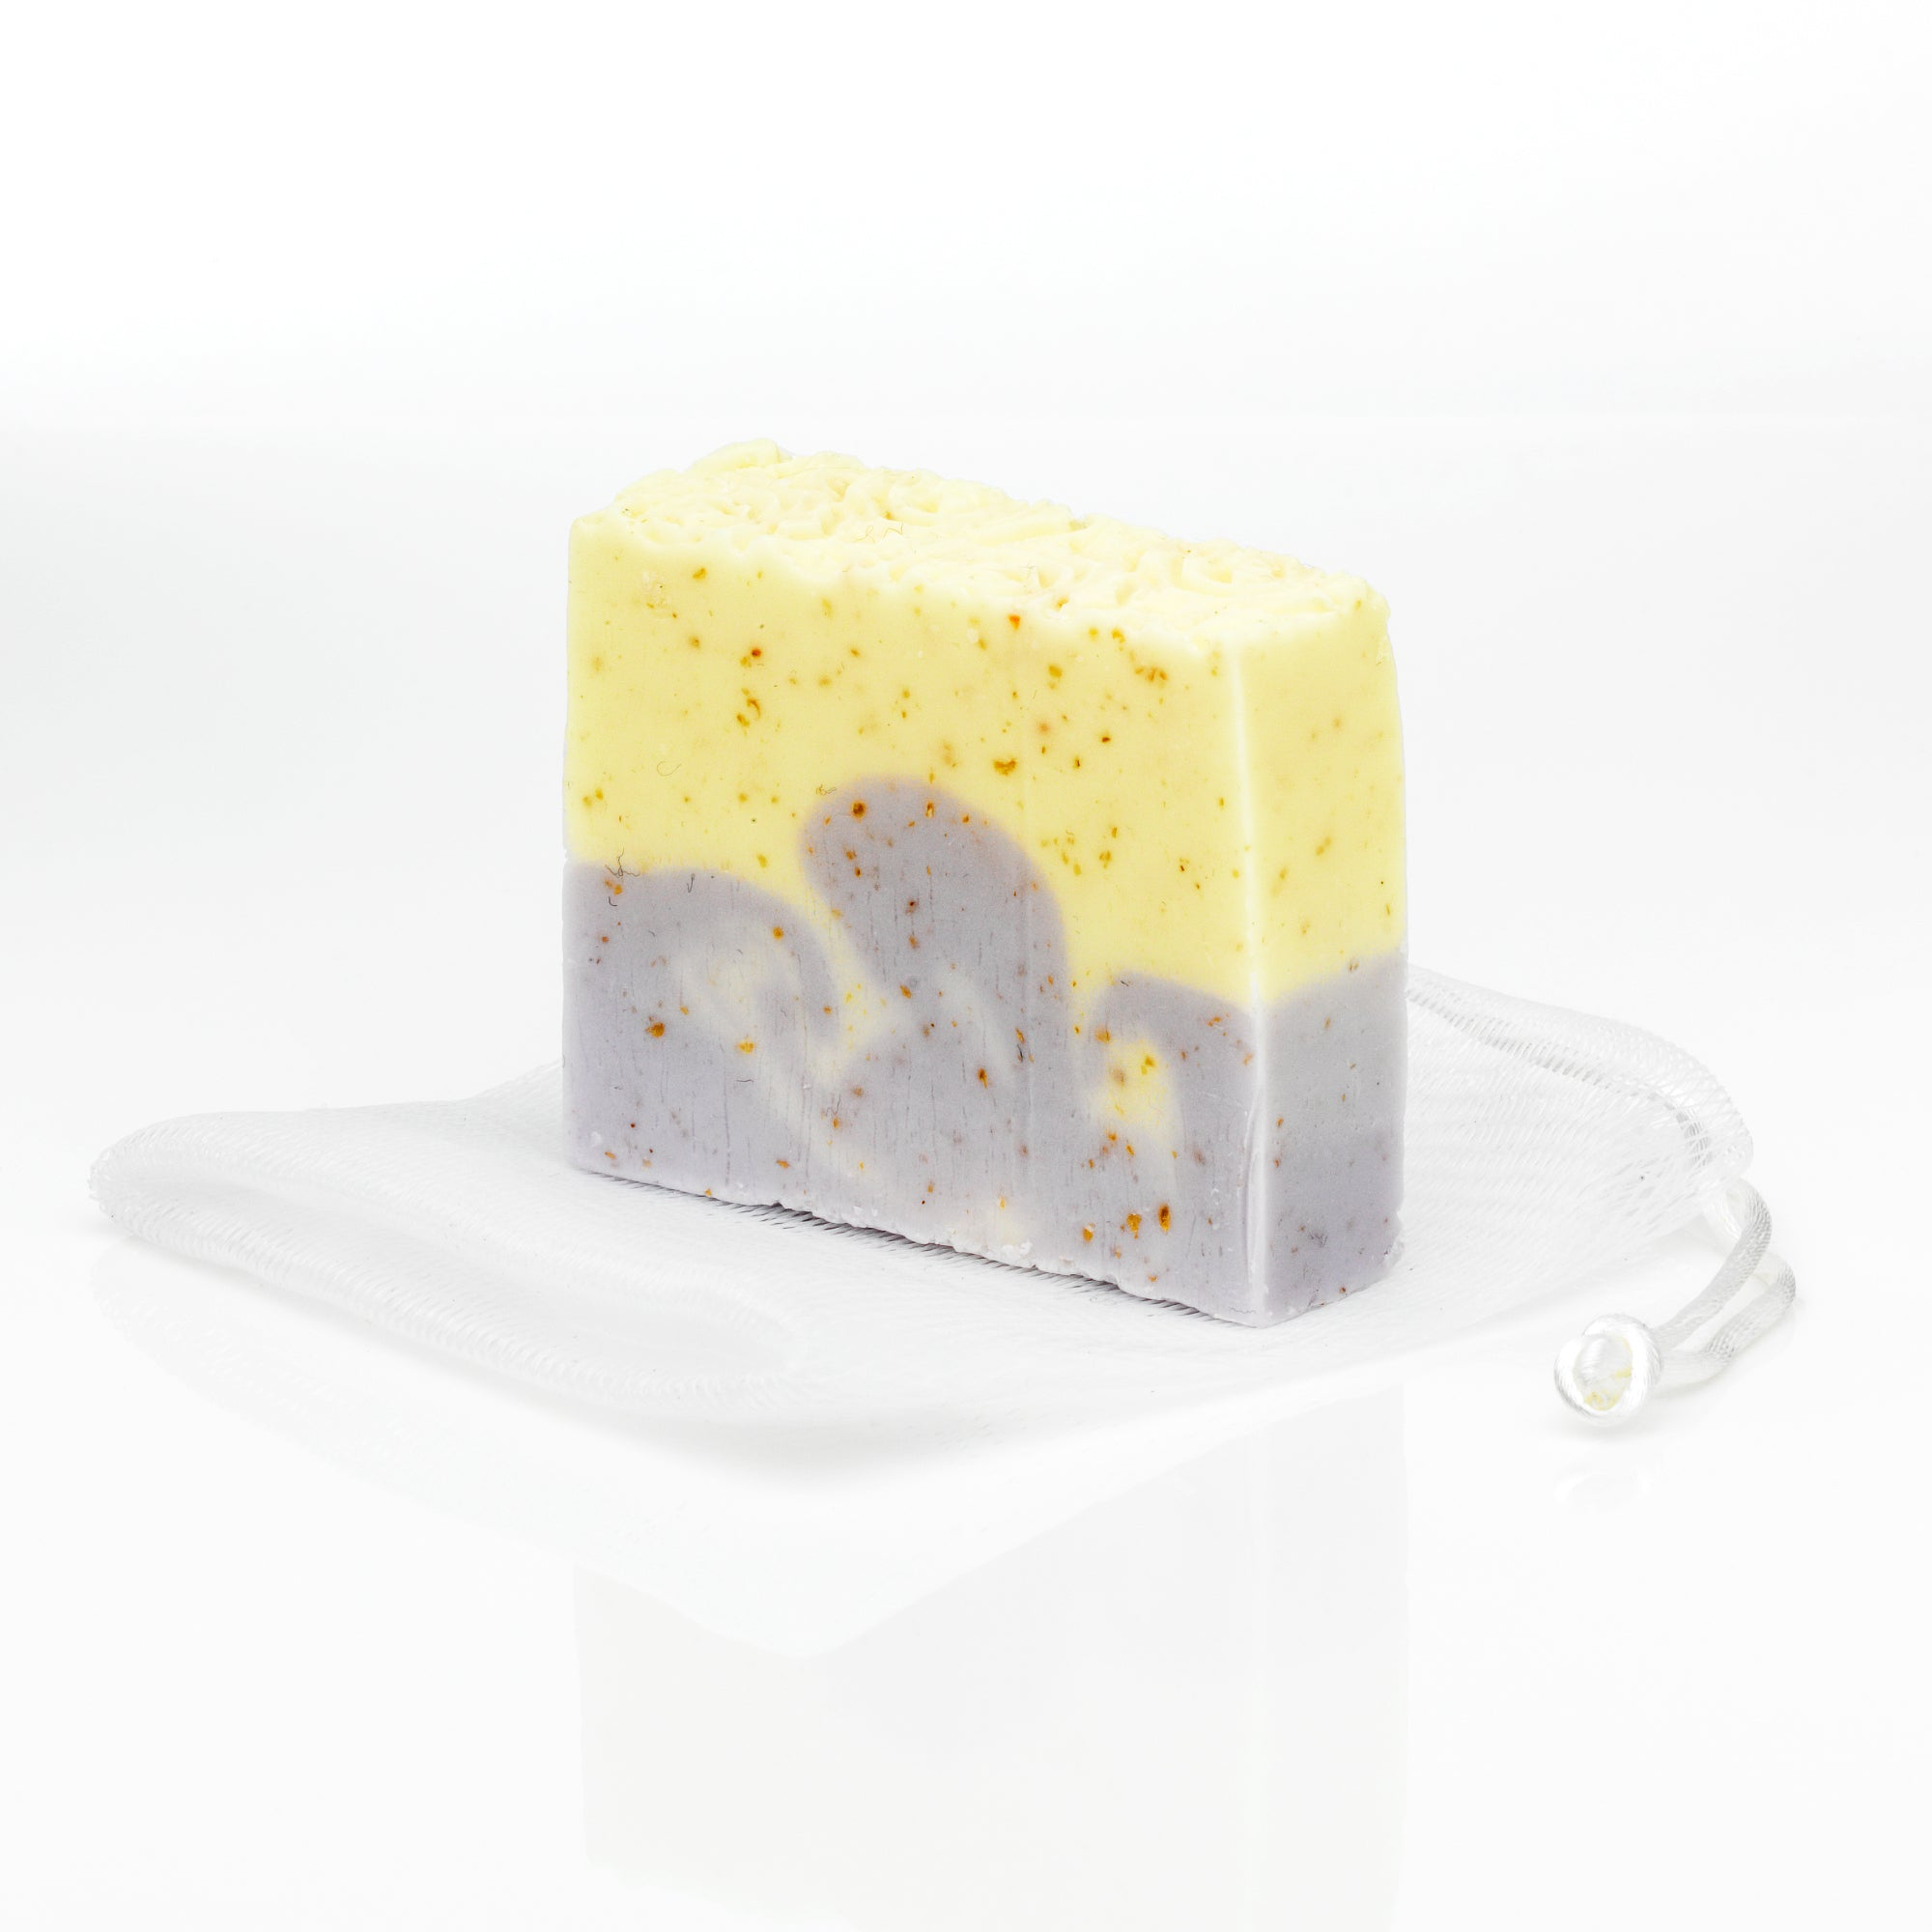 Lemon, Lavender and Eucalyptus Soap with Shea Butter & Oatmeal